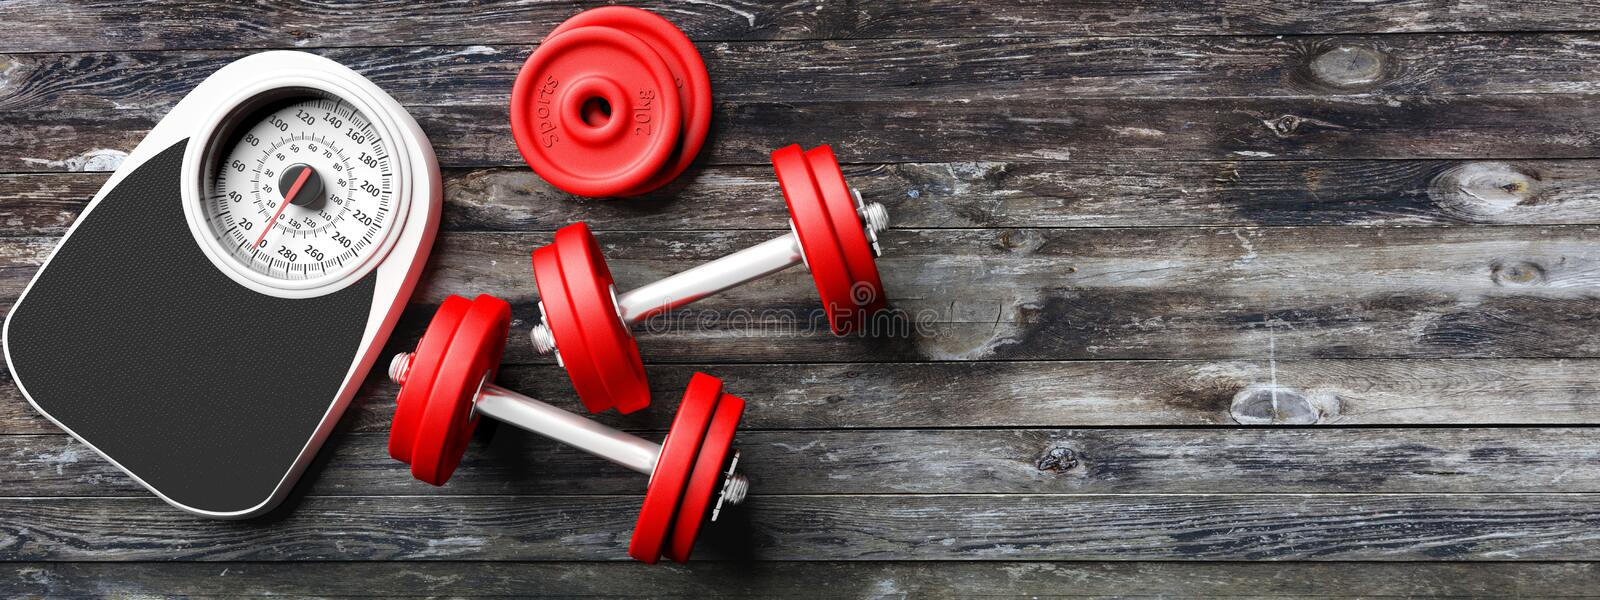 Bathroom scale, dumbbells on an old wooden floor background. Copyspace for text. 3d illustration vector illustration